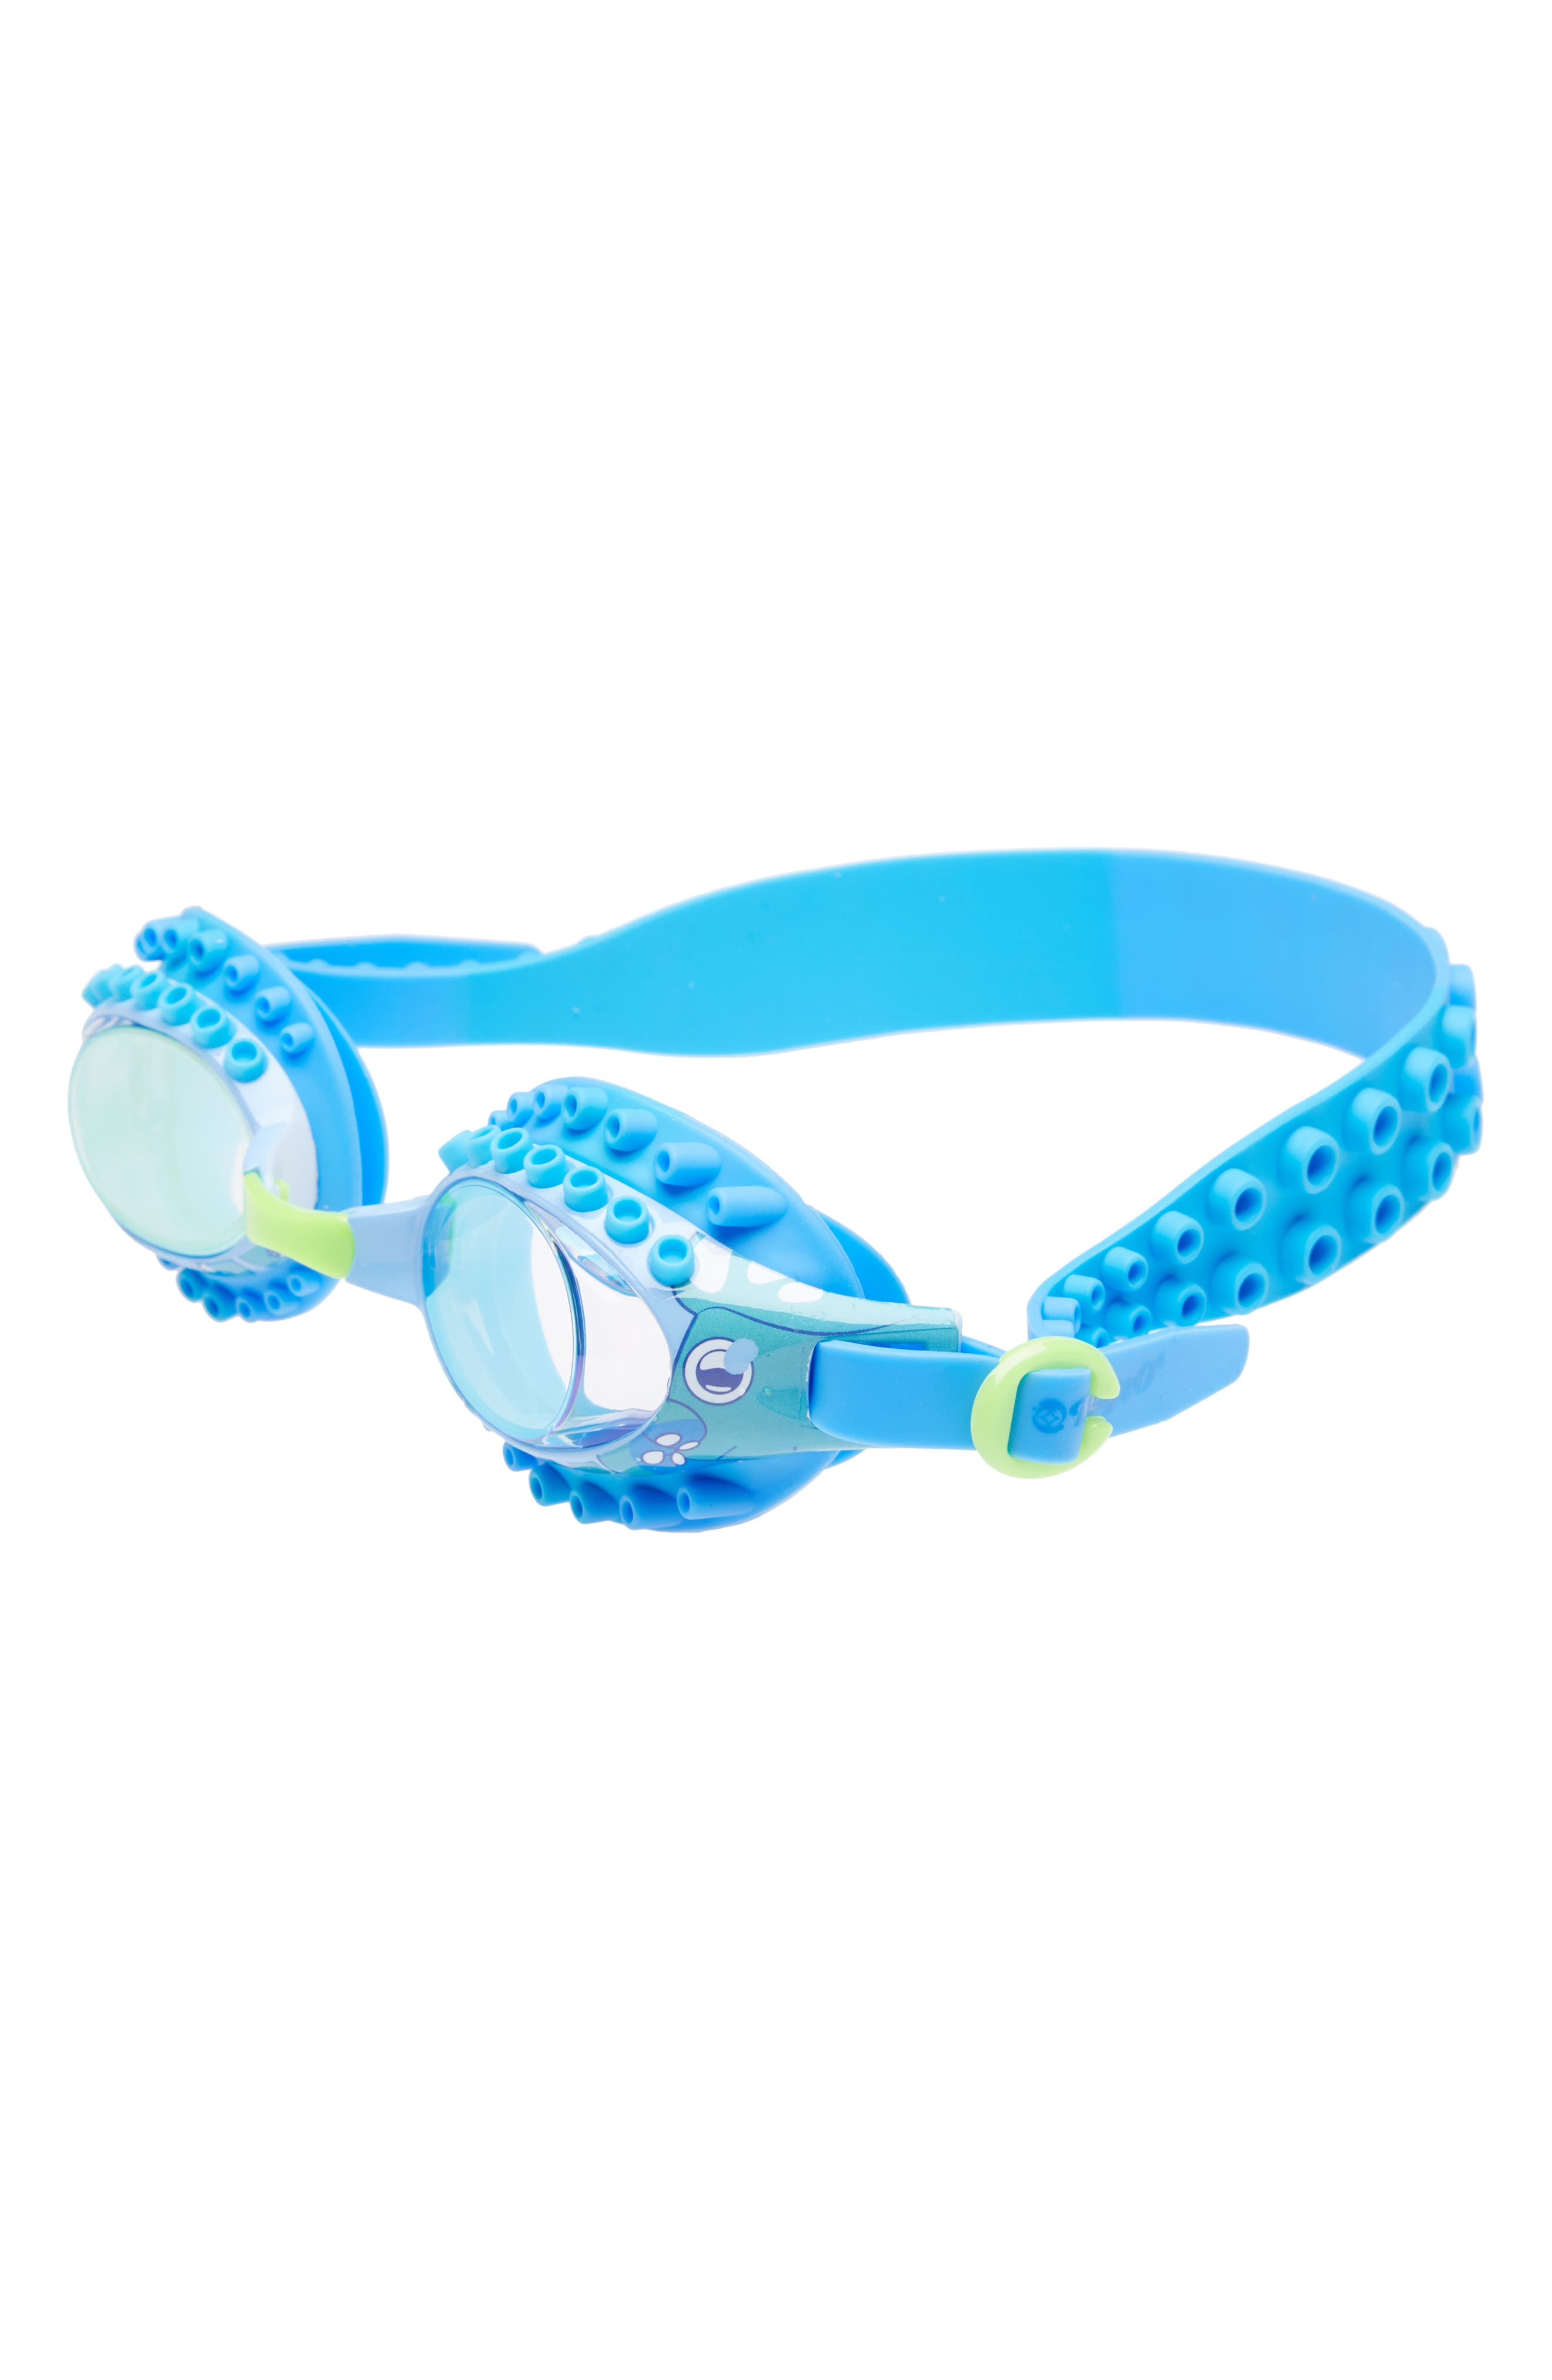 Alternate Image 1 Selected - Bling2o Octopus Swim Goggles (Kids)